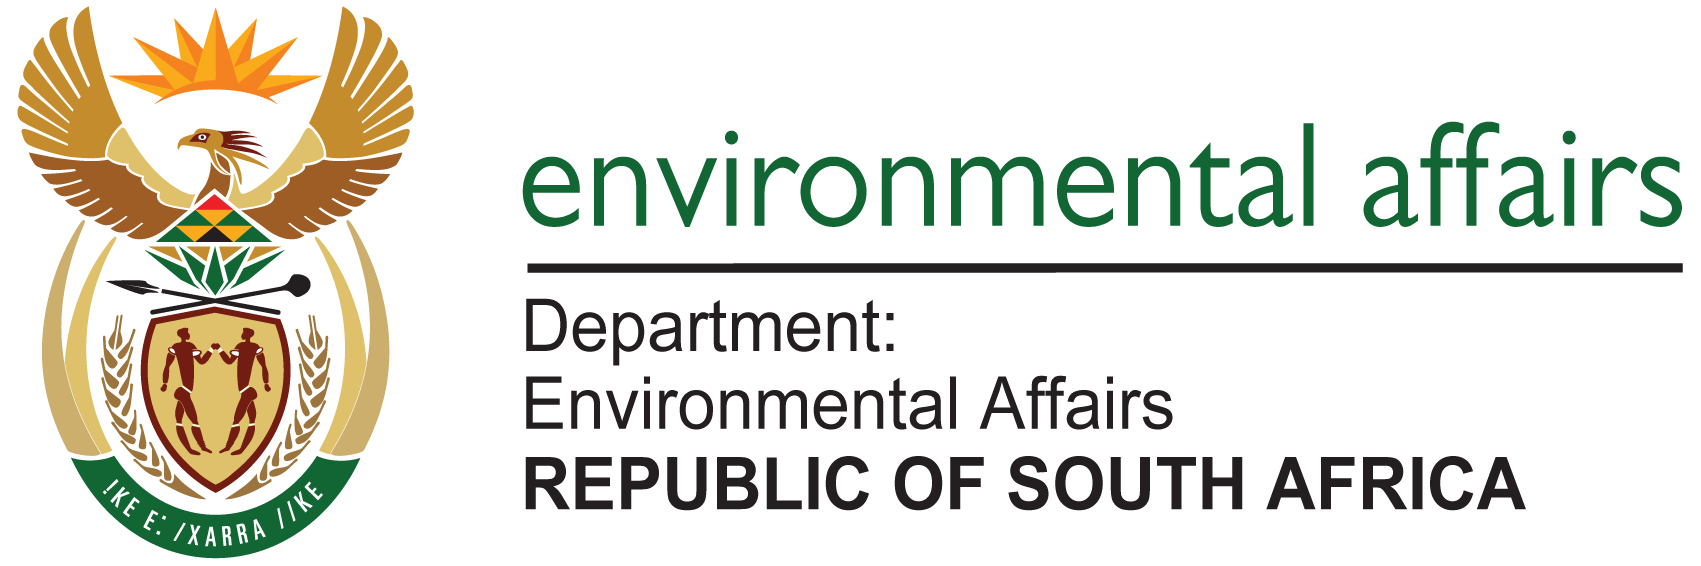 10 Dep-environmental-affairs.jpg